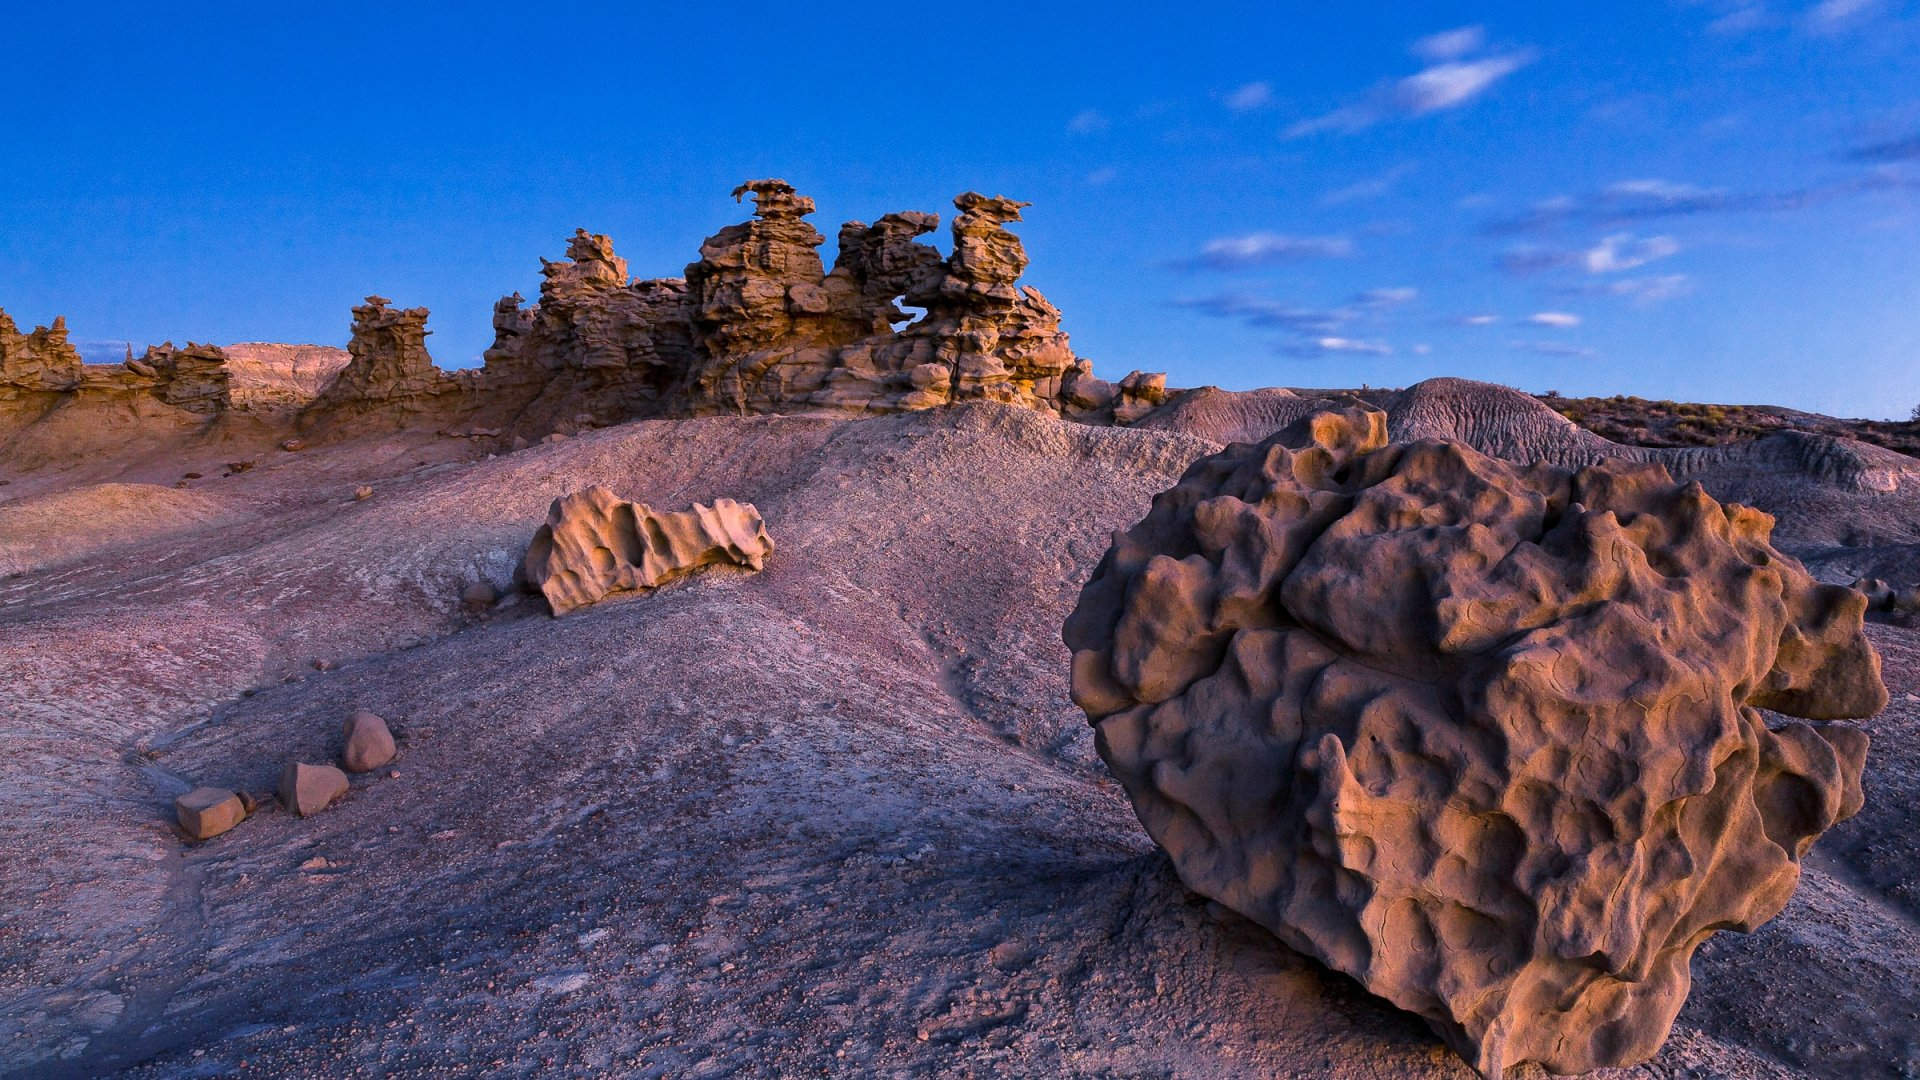 Alien-like dimpled rock in the foreground of more funky formations under a blue sky at Fantasy Canyon